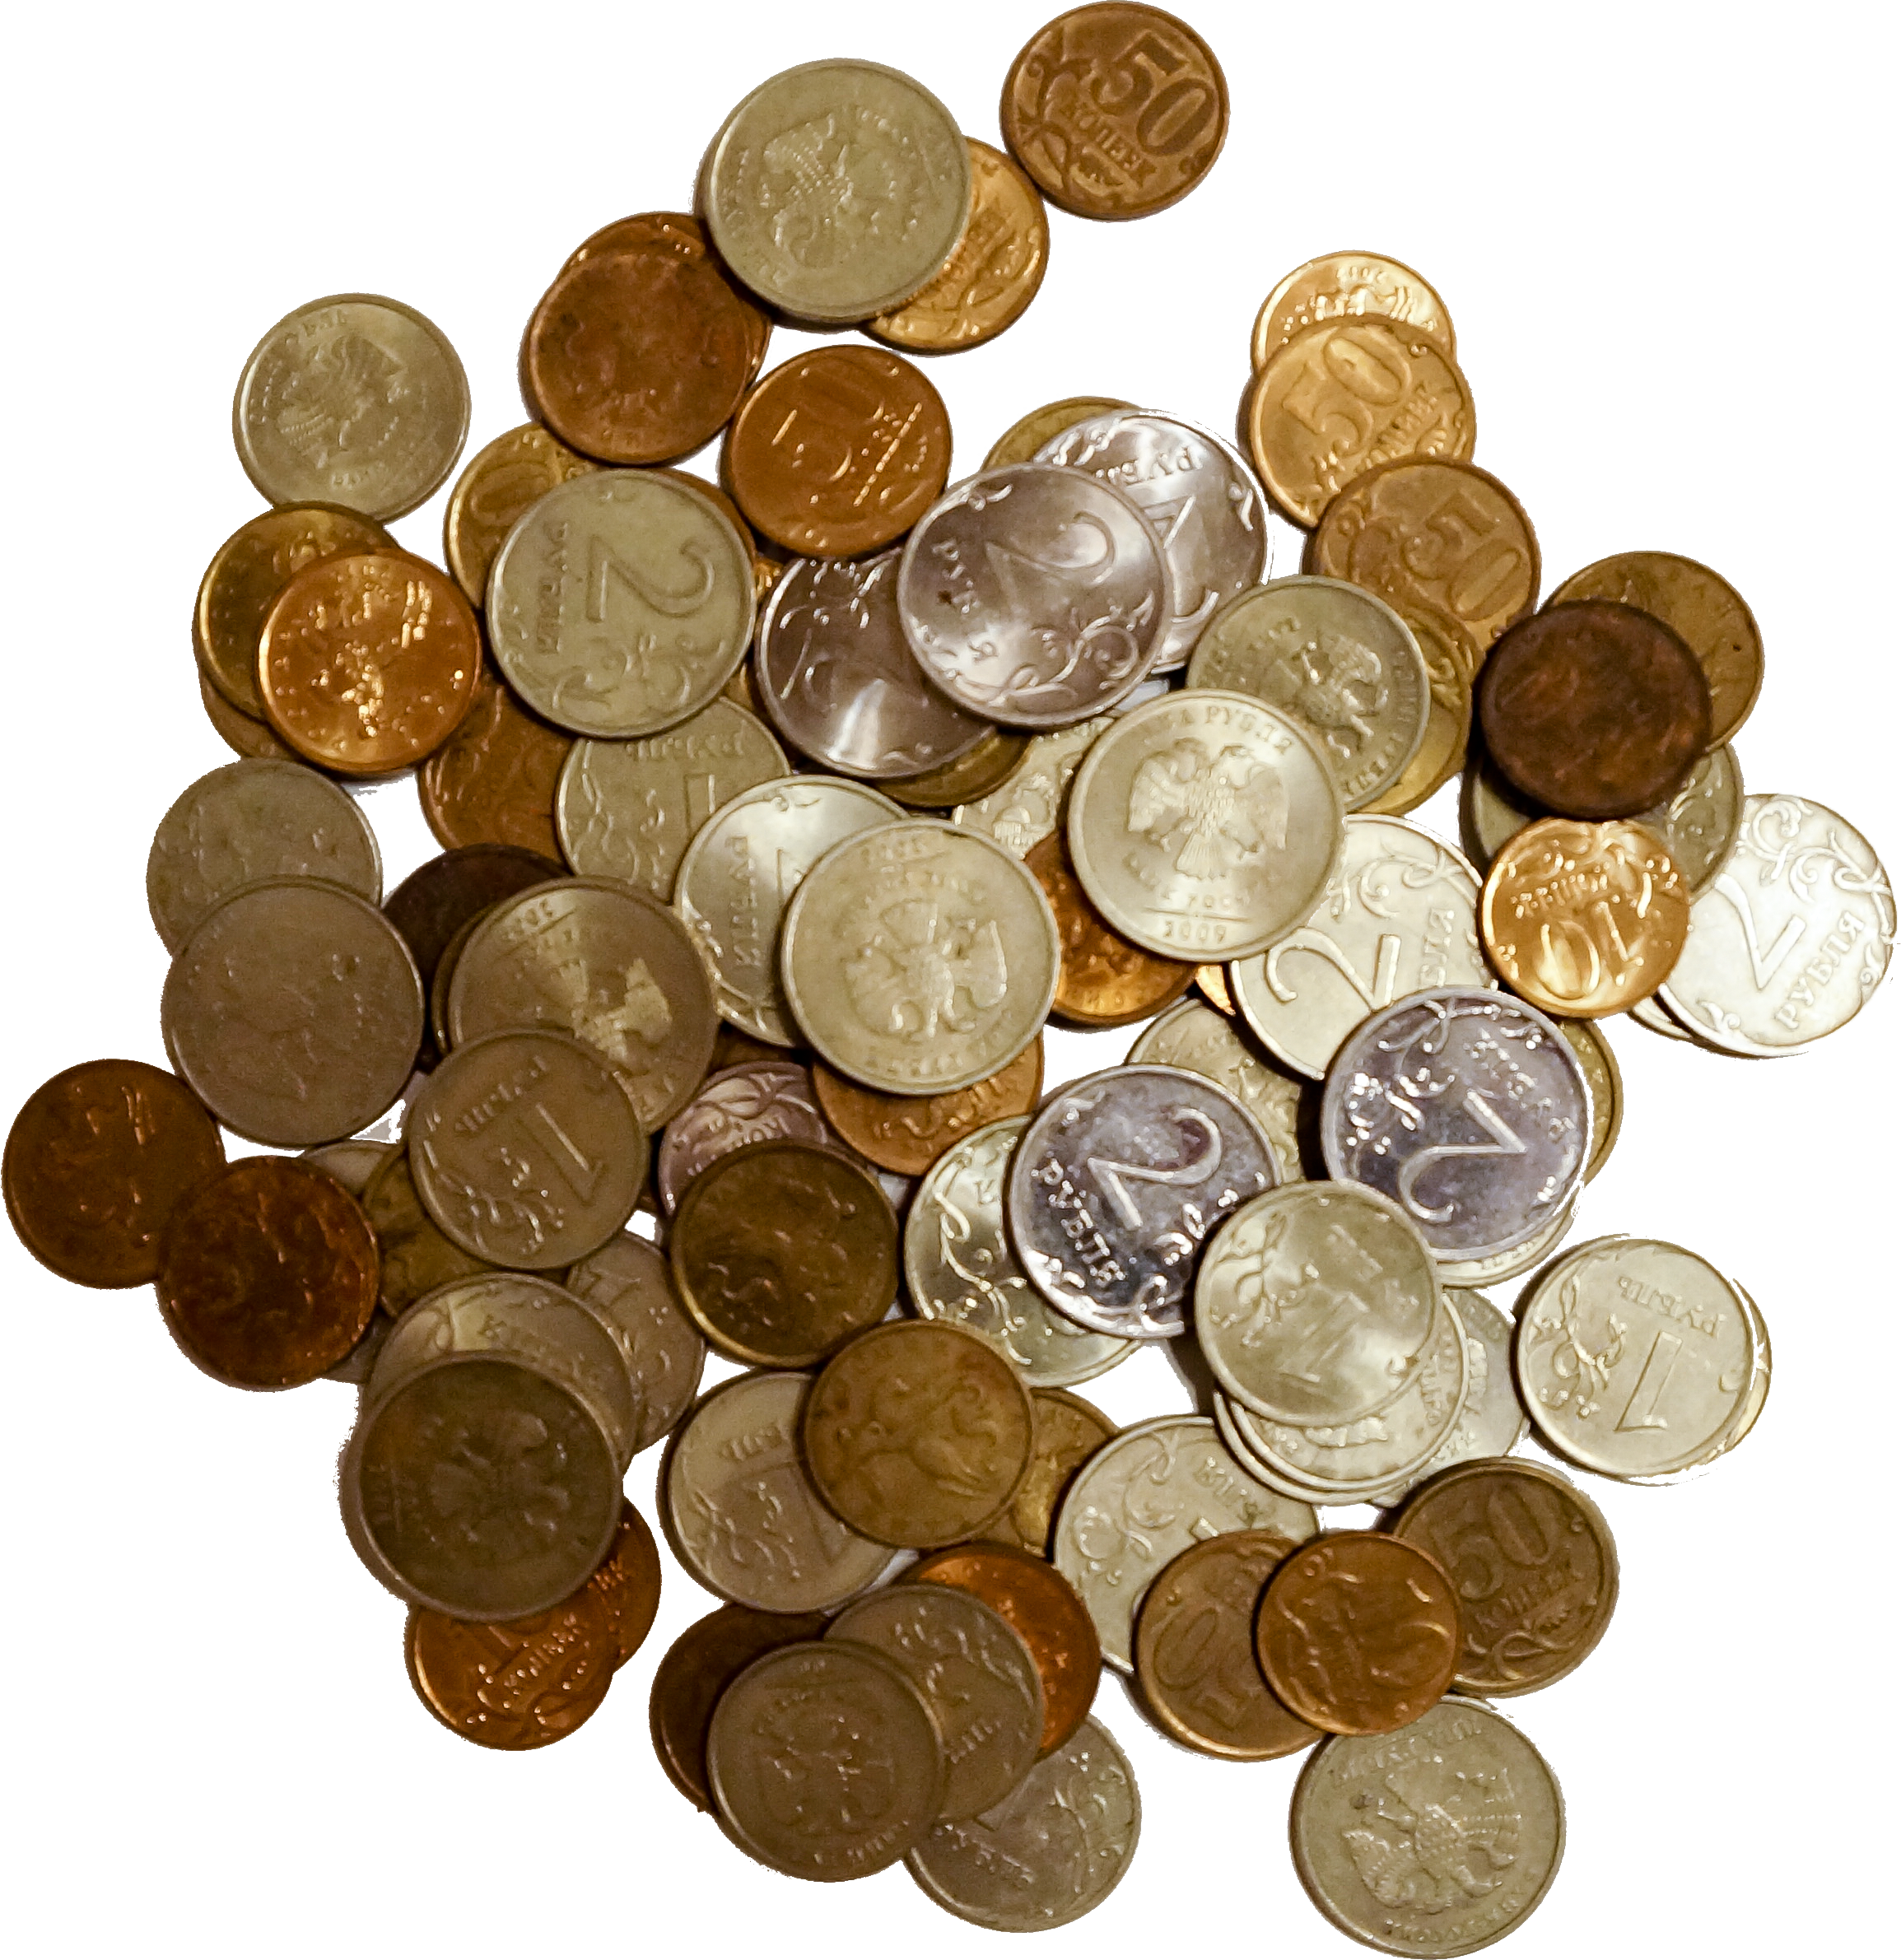 Free download of Coins PNG